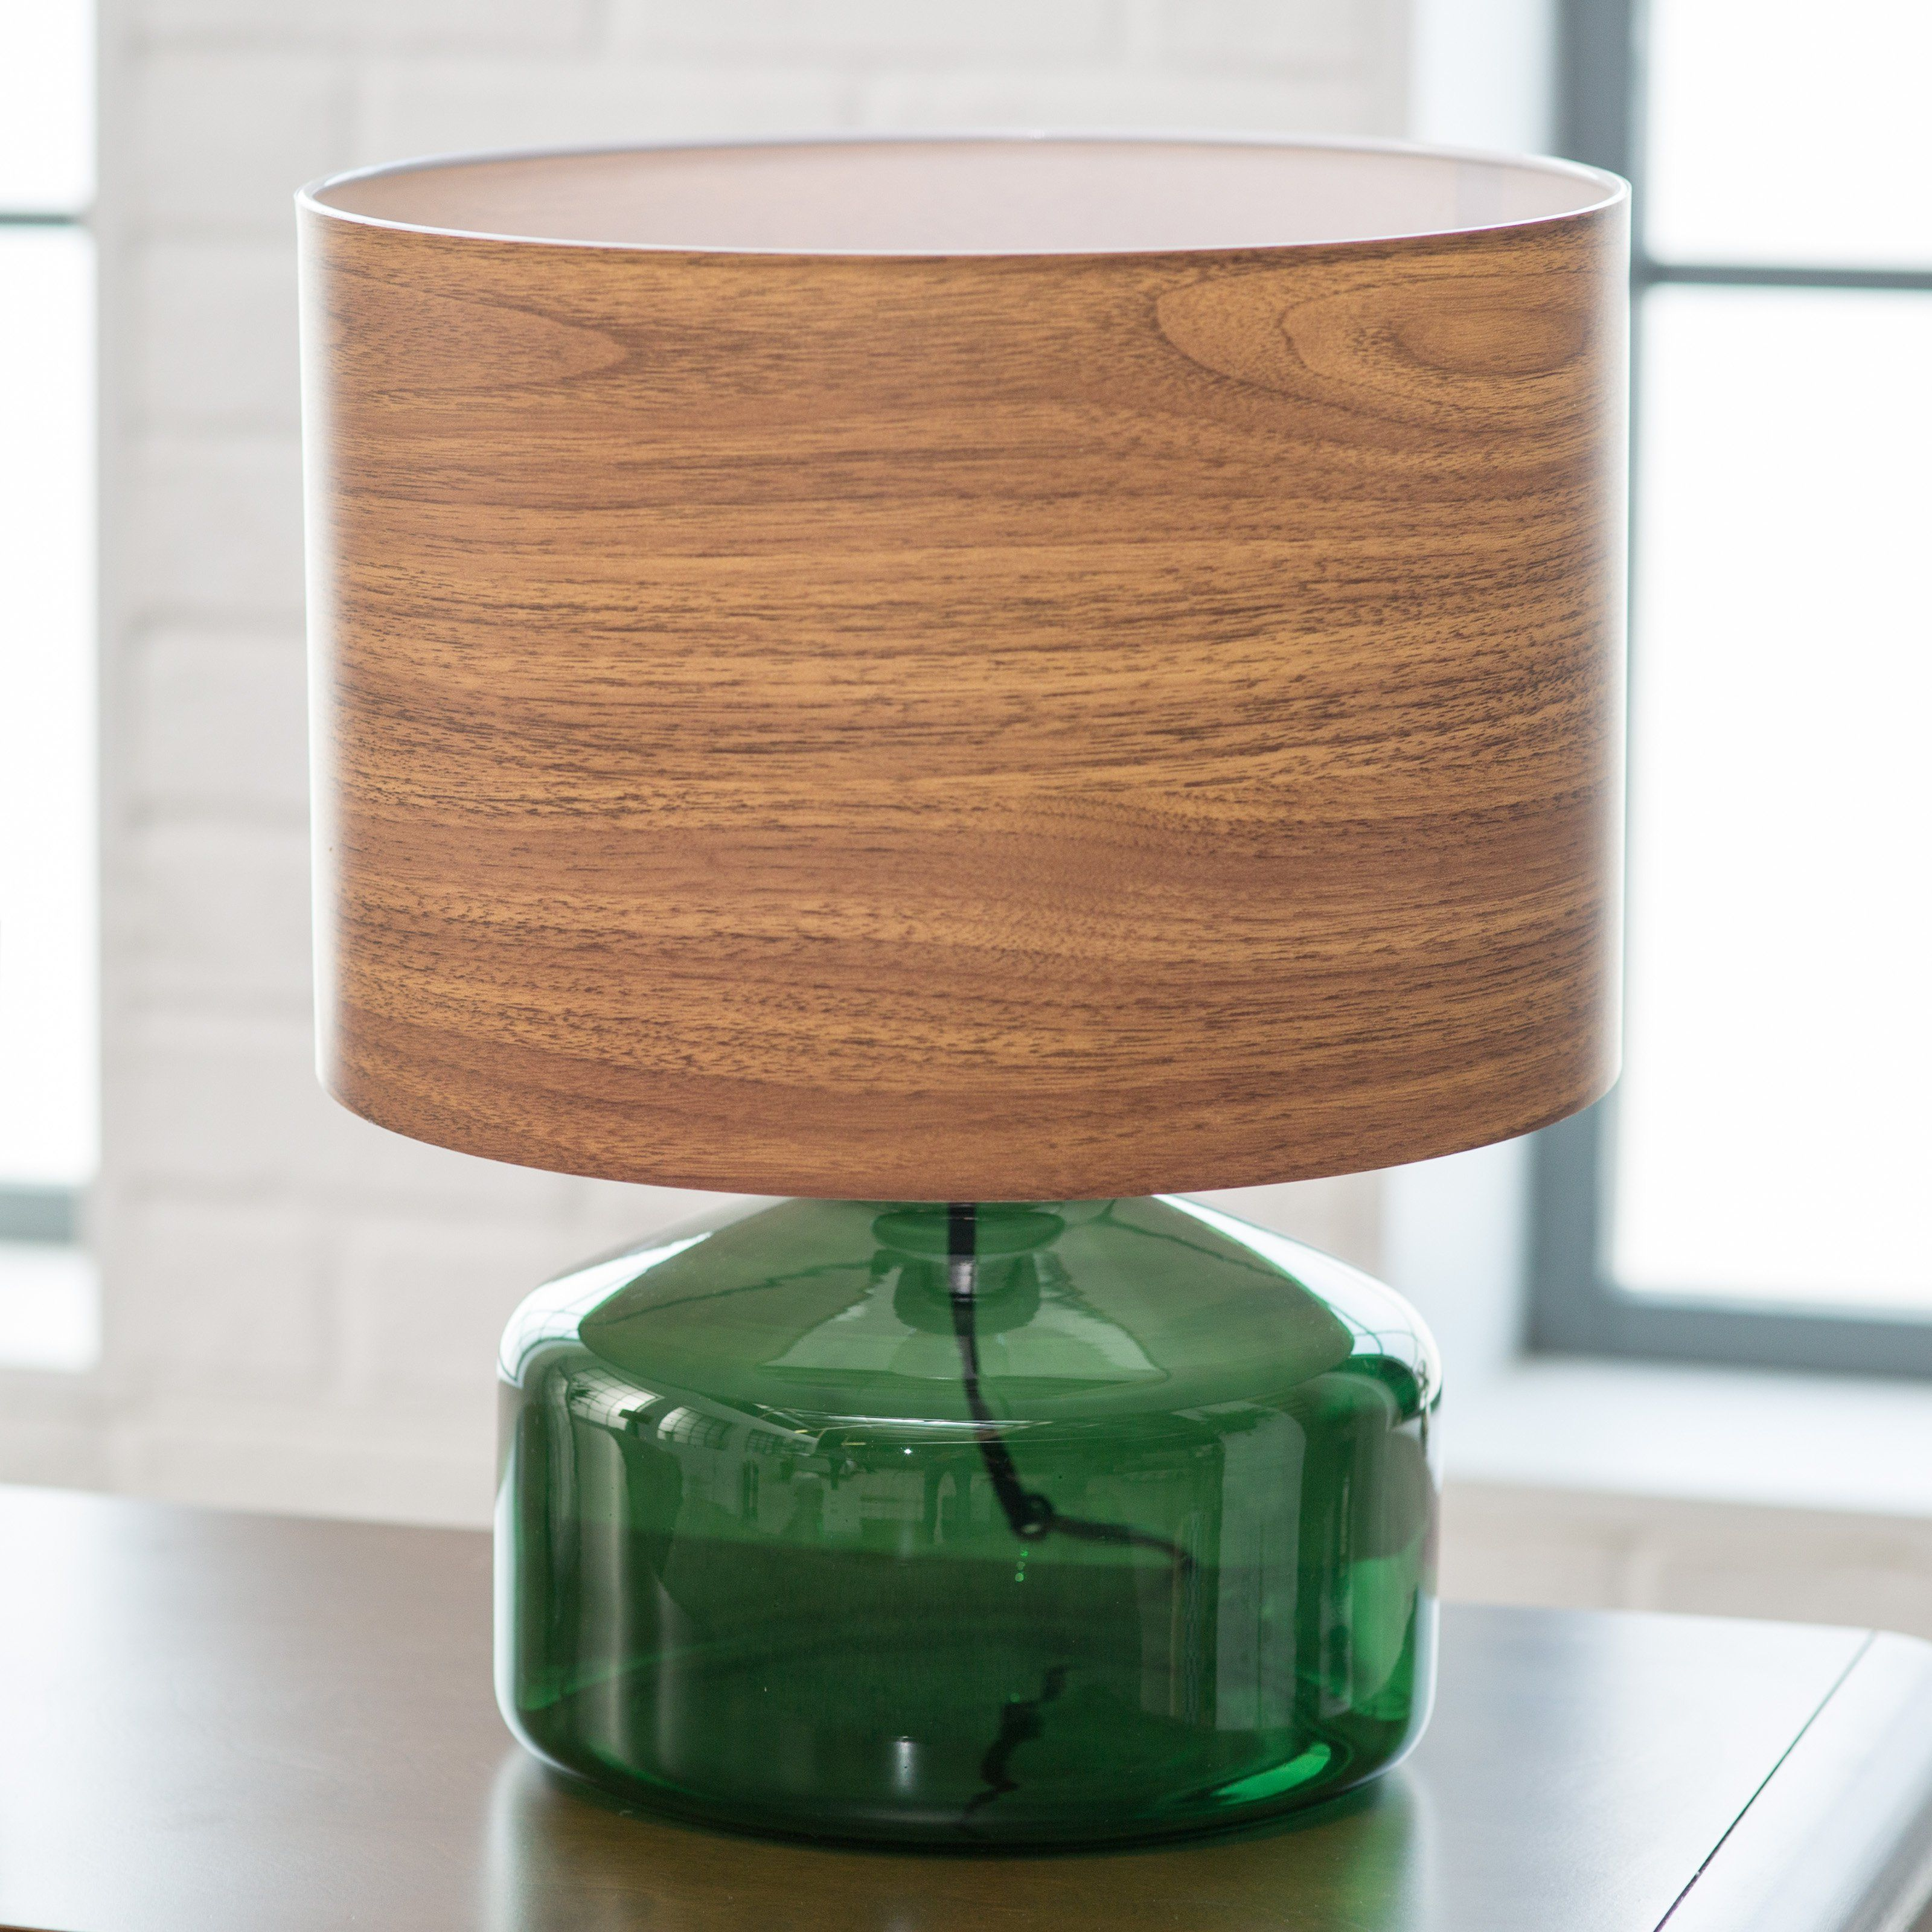 Beautiful Green Glass Base With Contemporary Wood Lampshade! Adesso Jade Table Lamp |  From Hayneedle